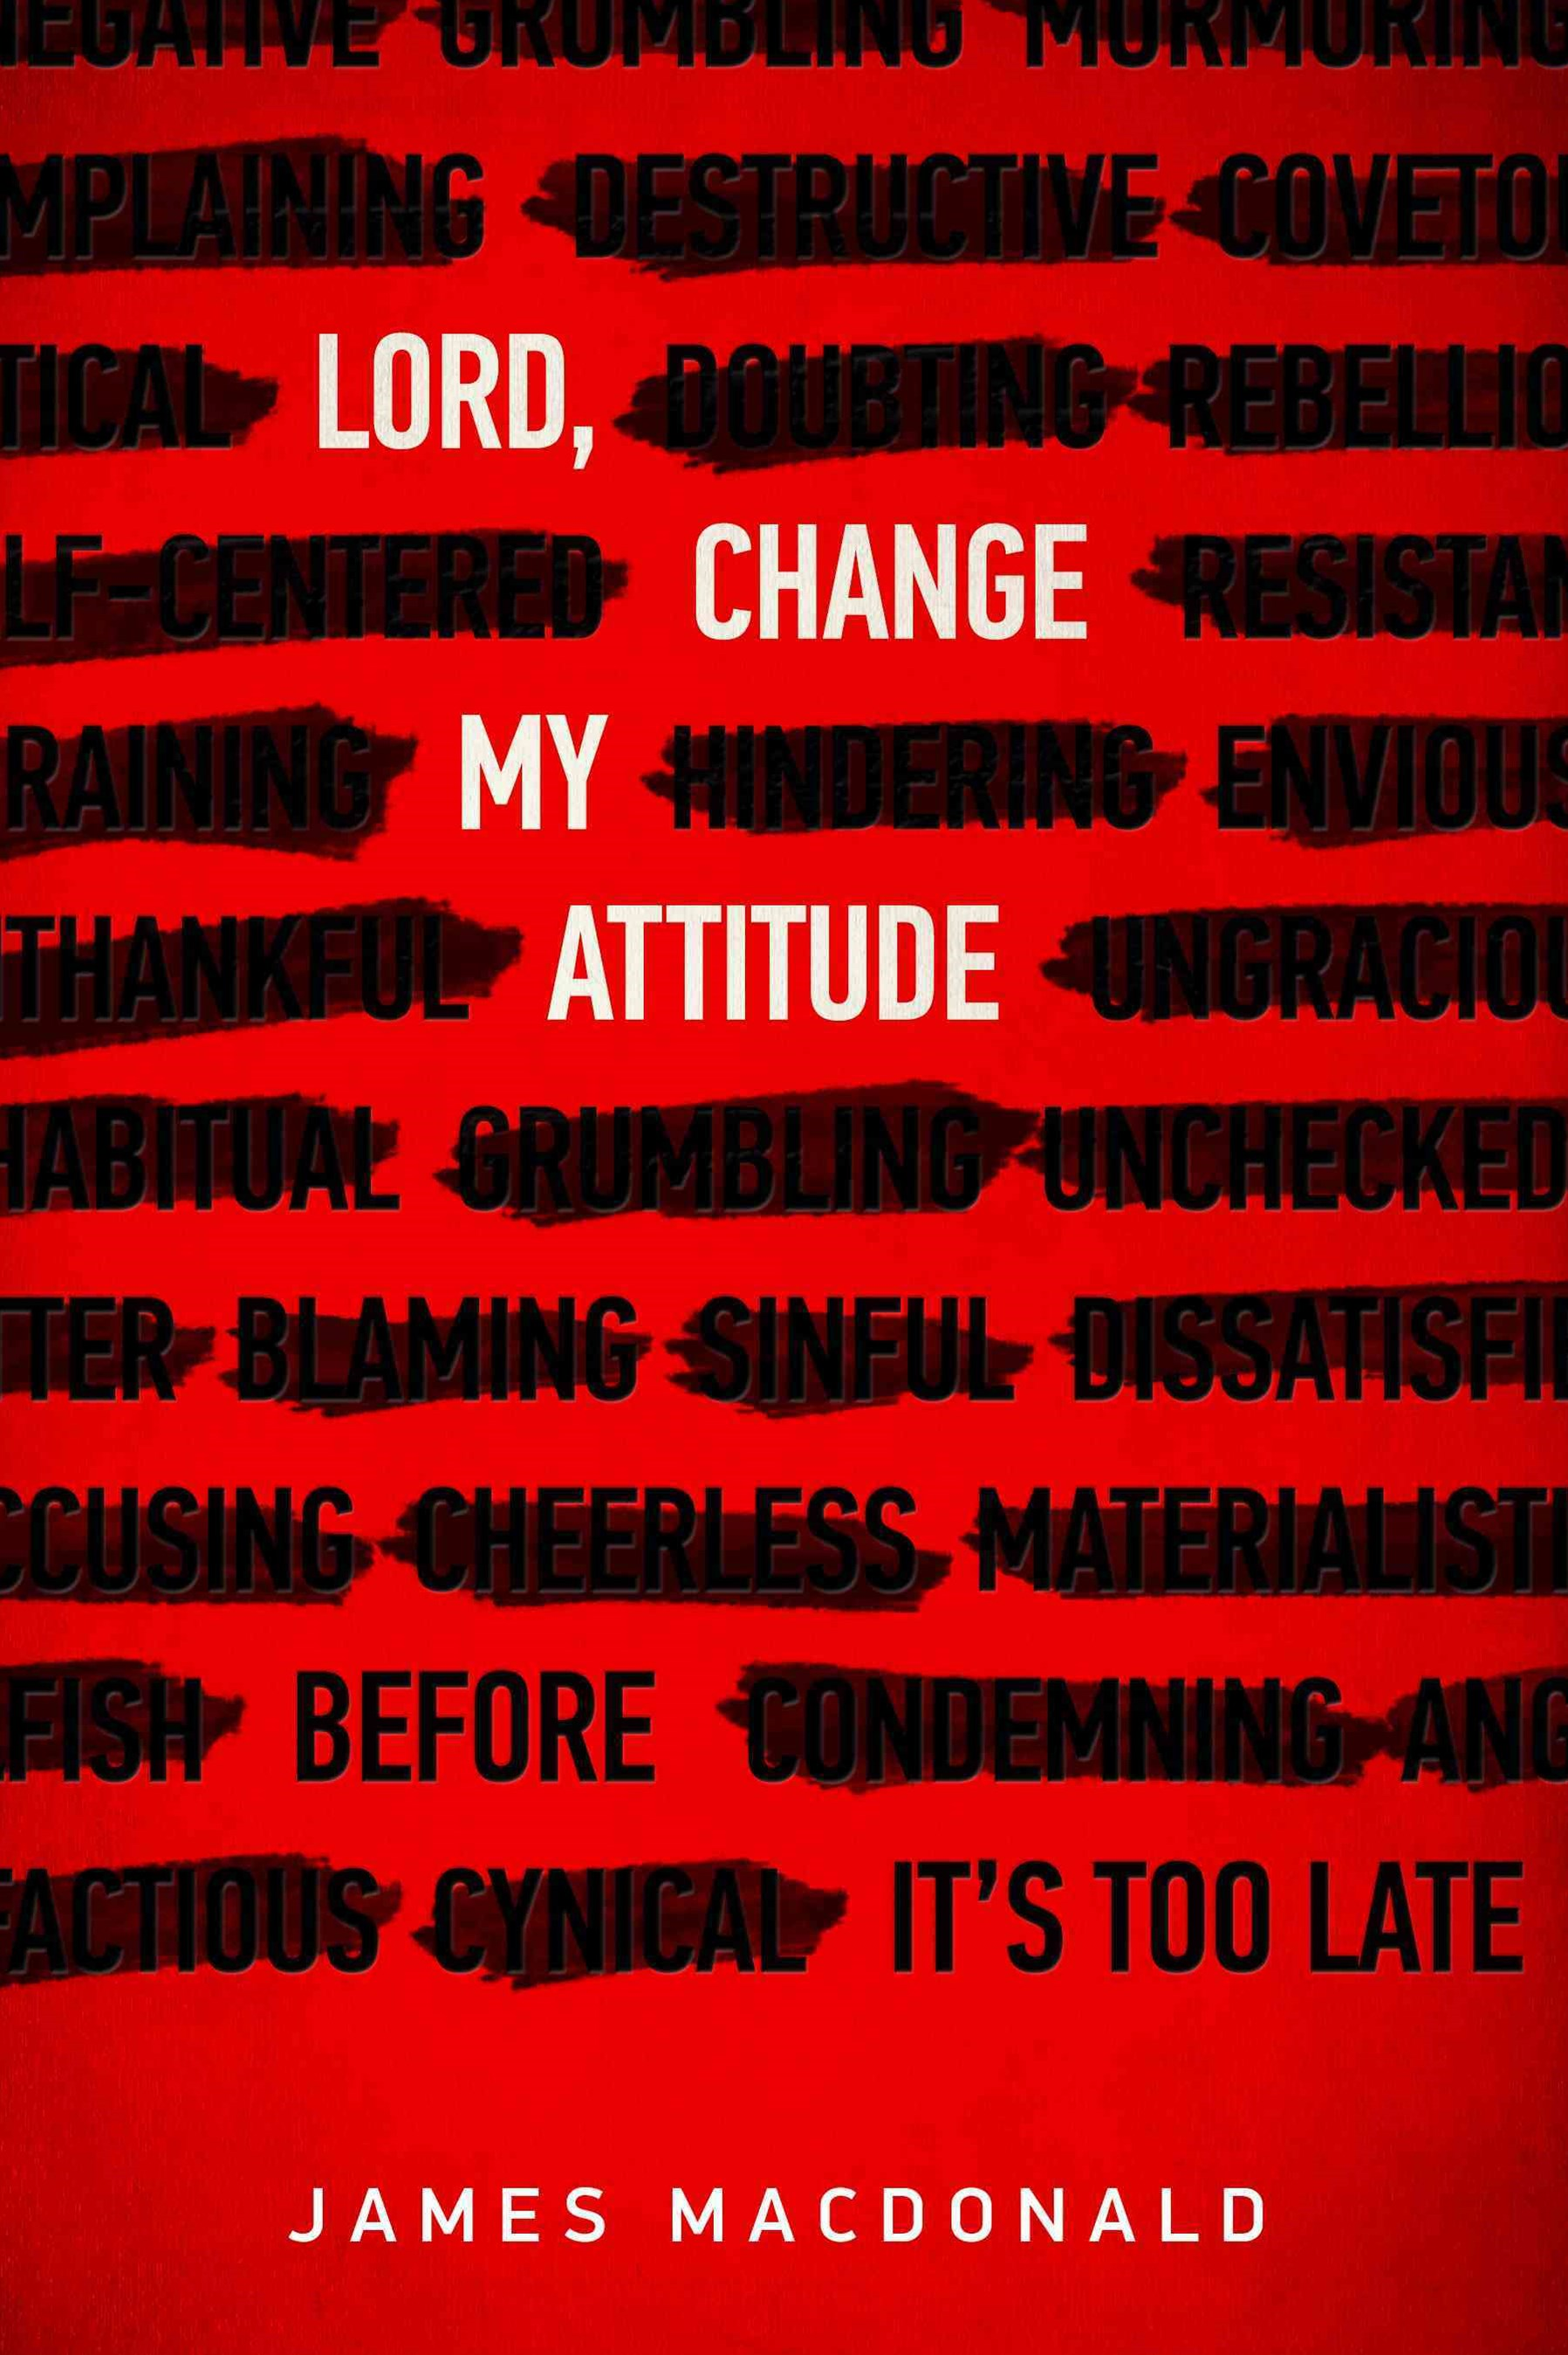 LORD CHANGE MY ATTITUDE